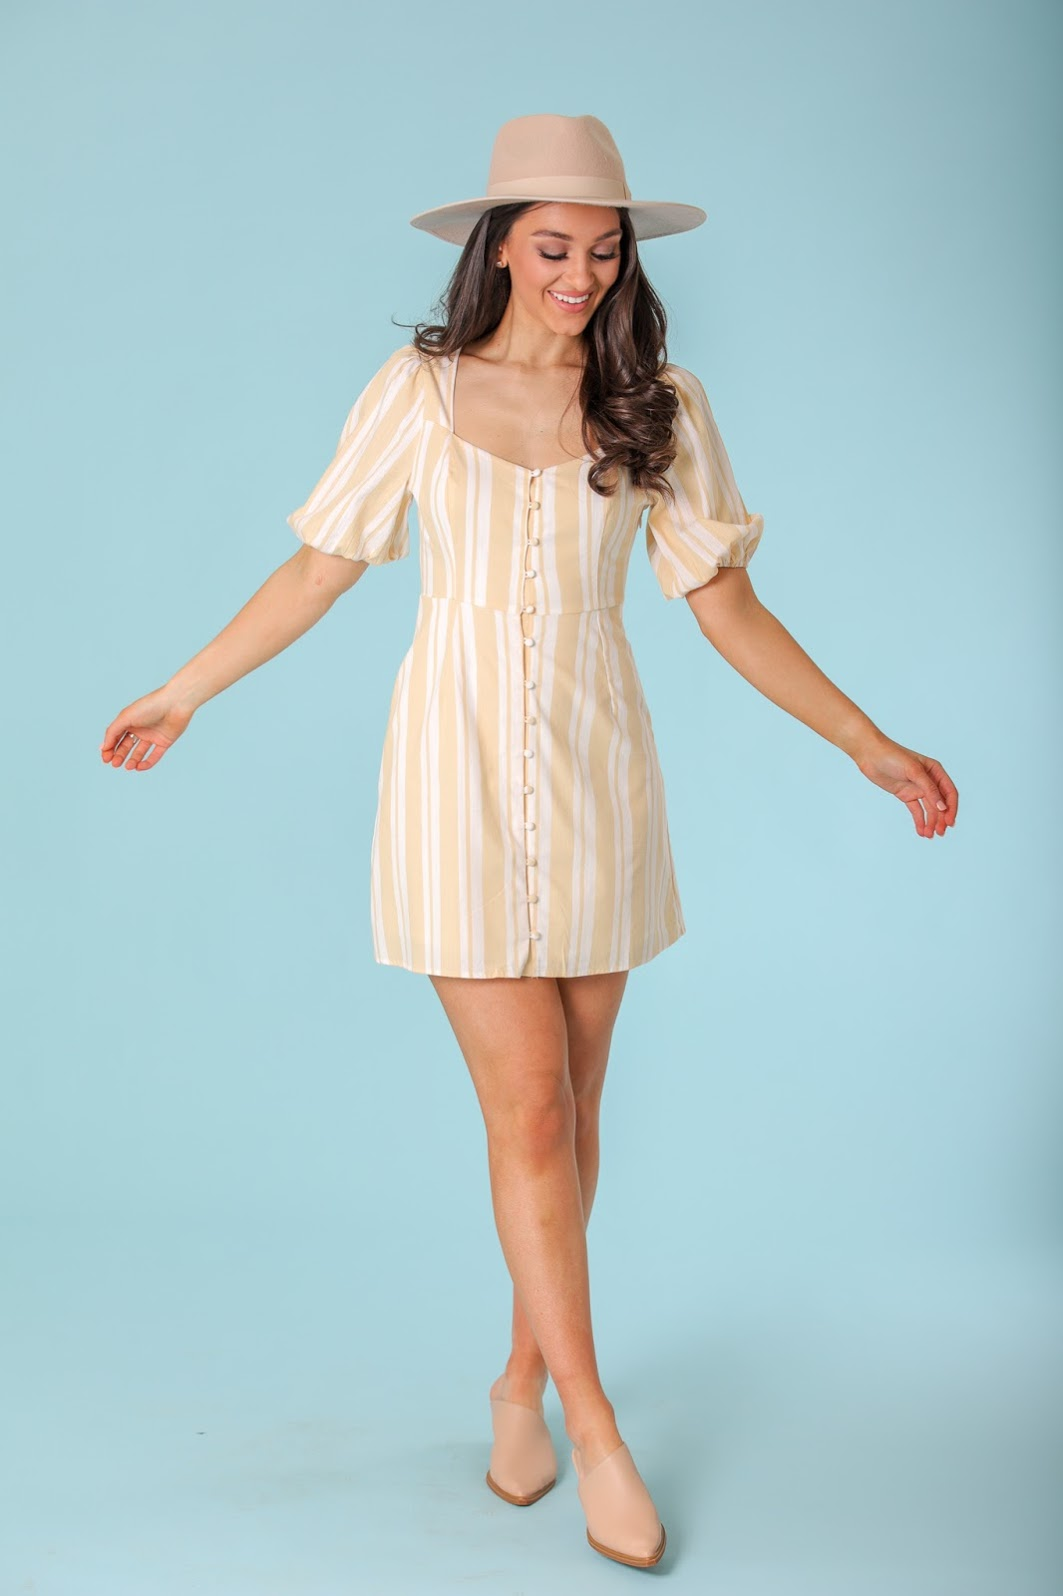 Summer Sun Sweetheart Puff Sleeve Mini Dress - Dresses - Wight Elephant Boutique